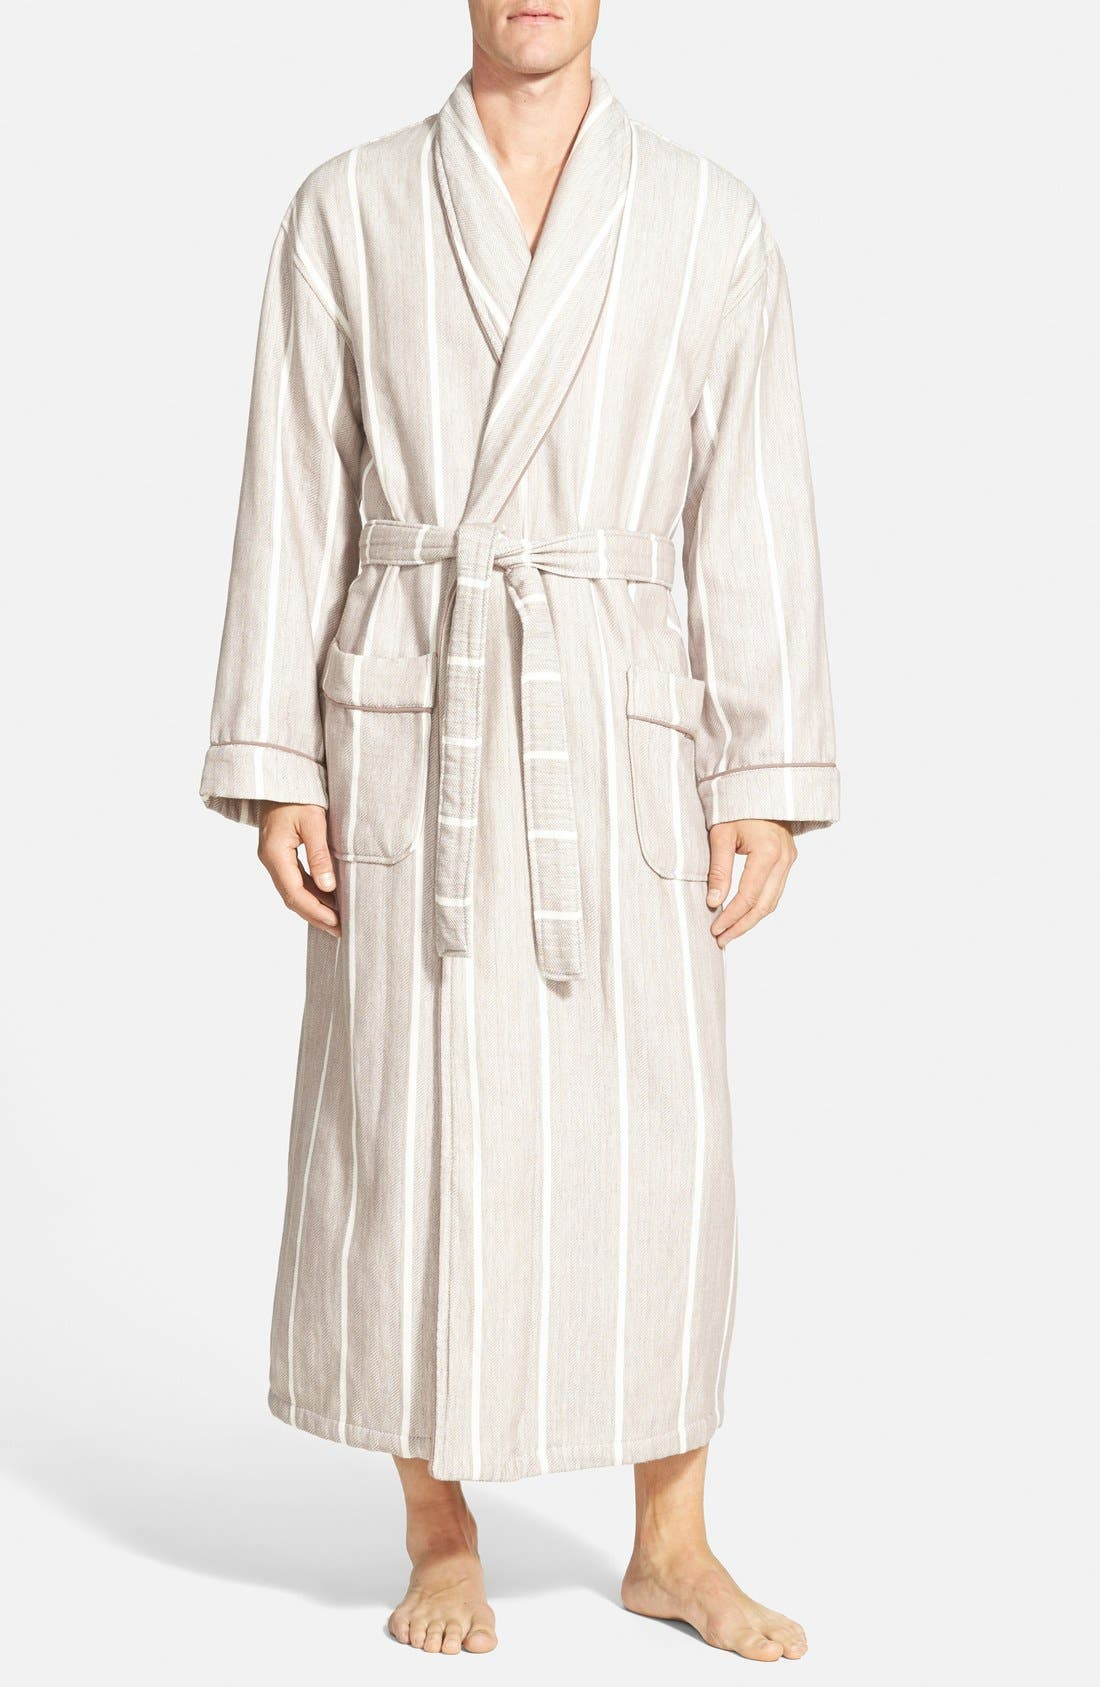 MAJESTIC INTERNATIONAL 'Breakers' Herringbone Cotton Robe